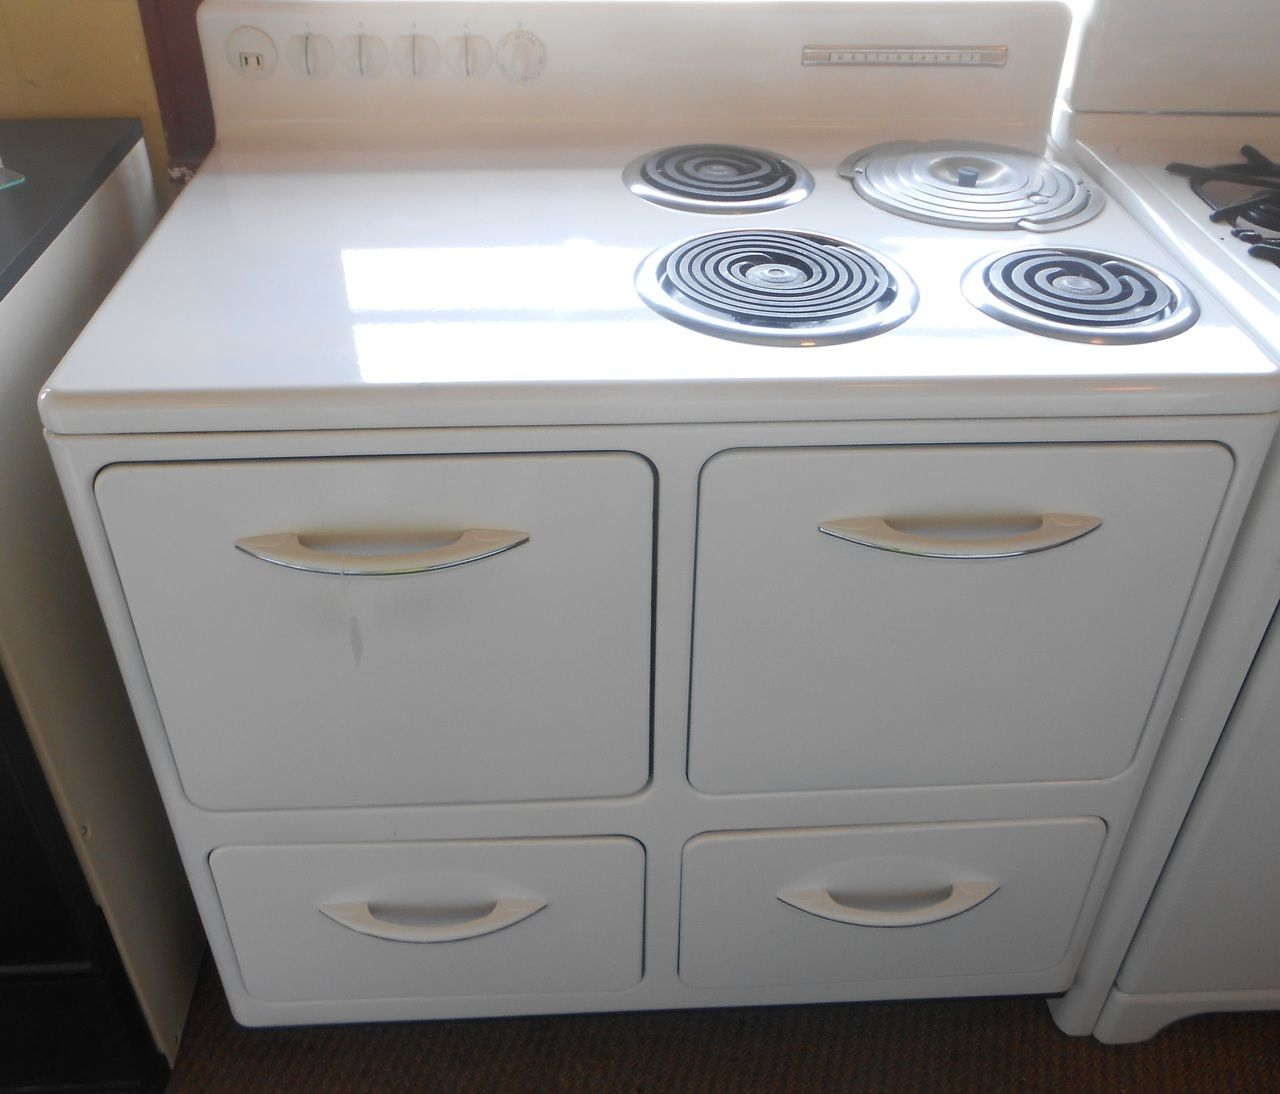 Appliance City - VINTAGE WESTINGHOUSE ELECTRIC RANGE 38 INCH ...